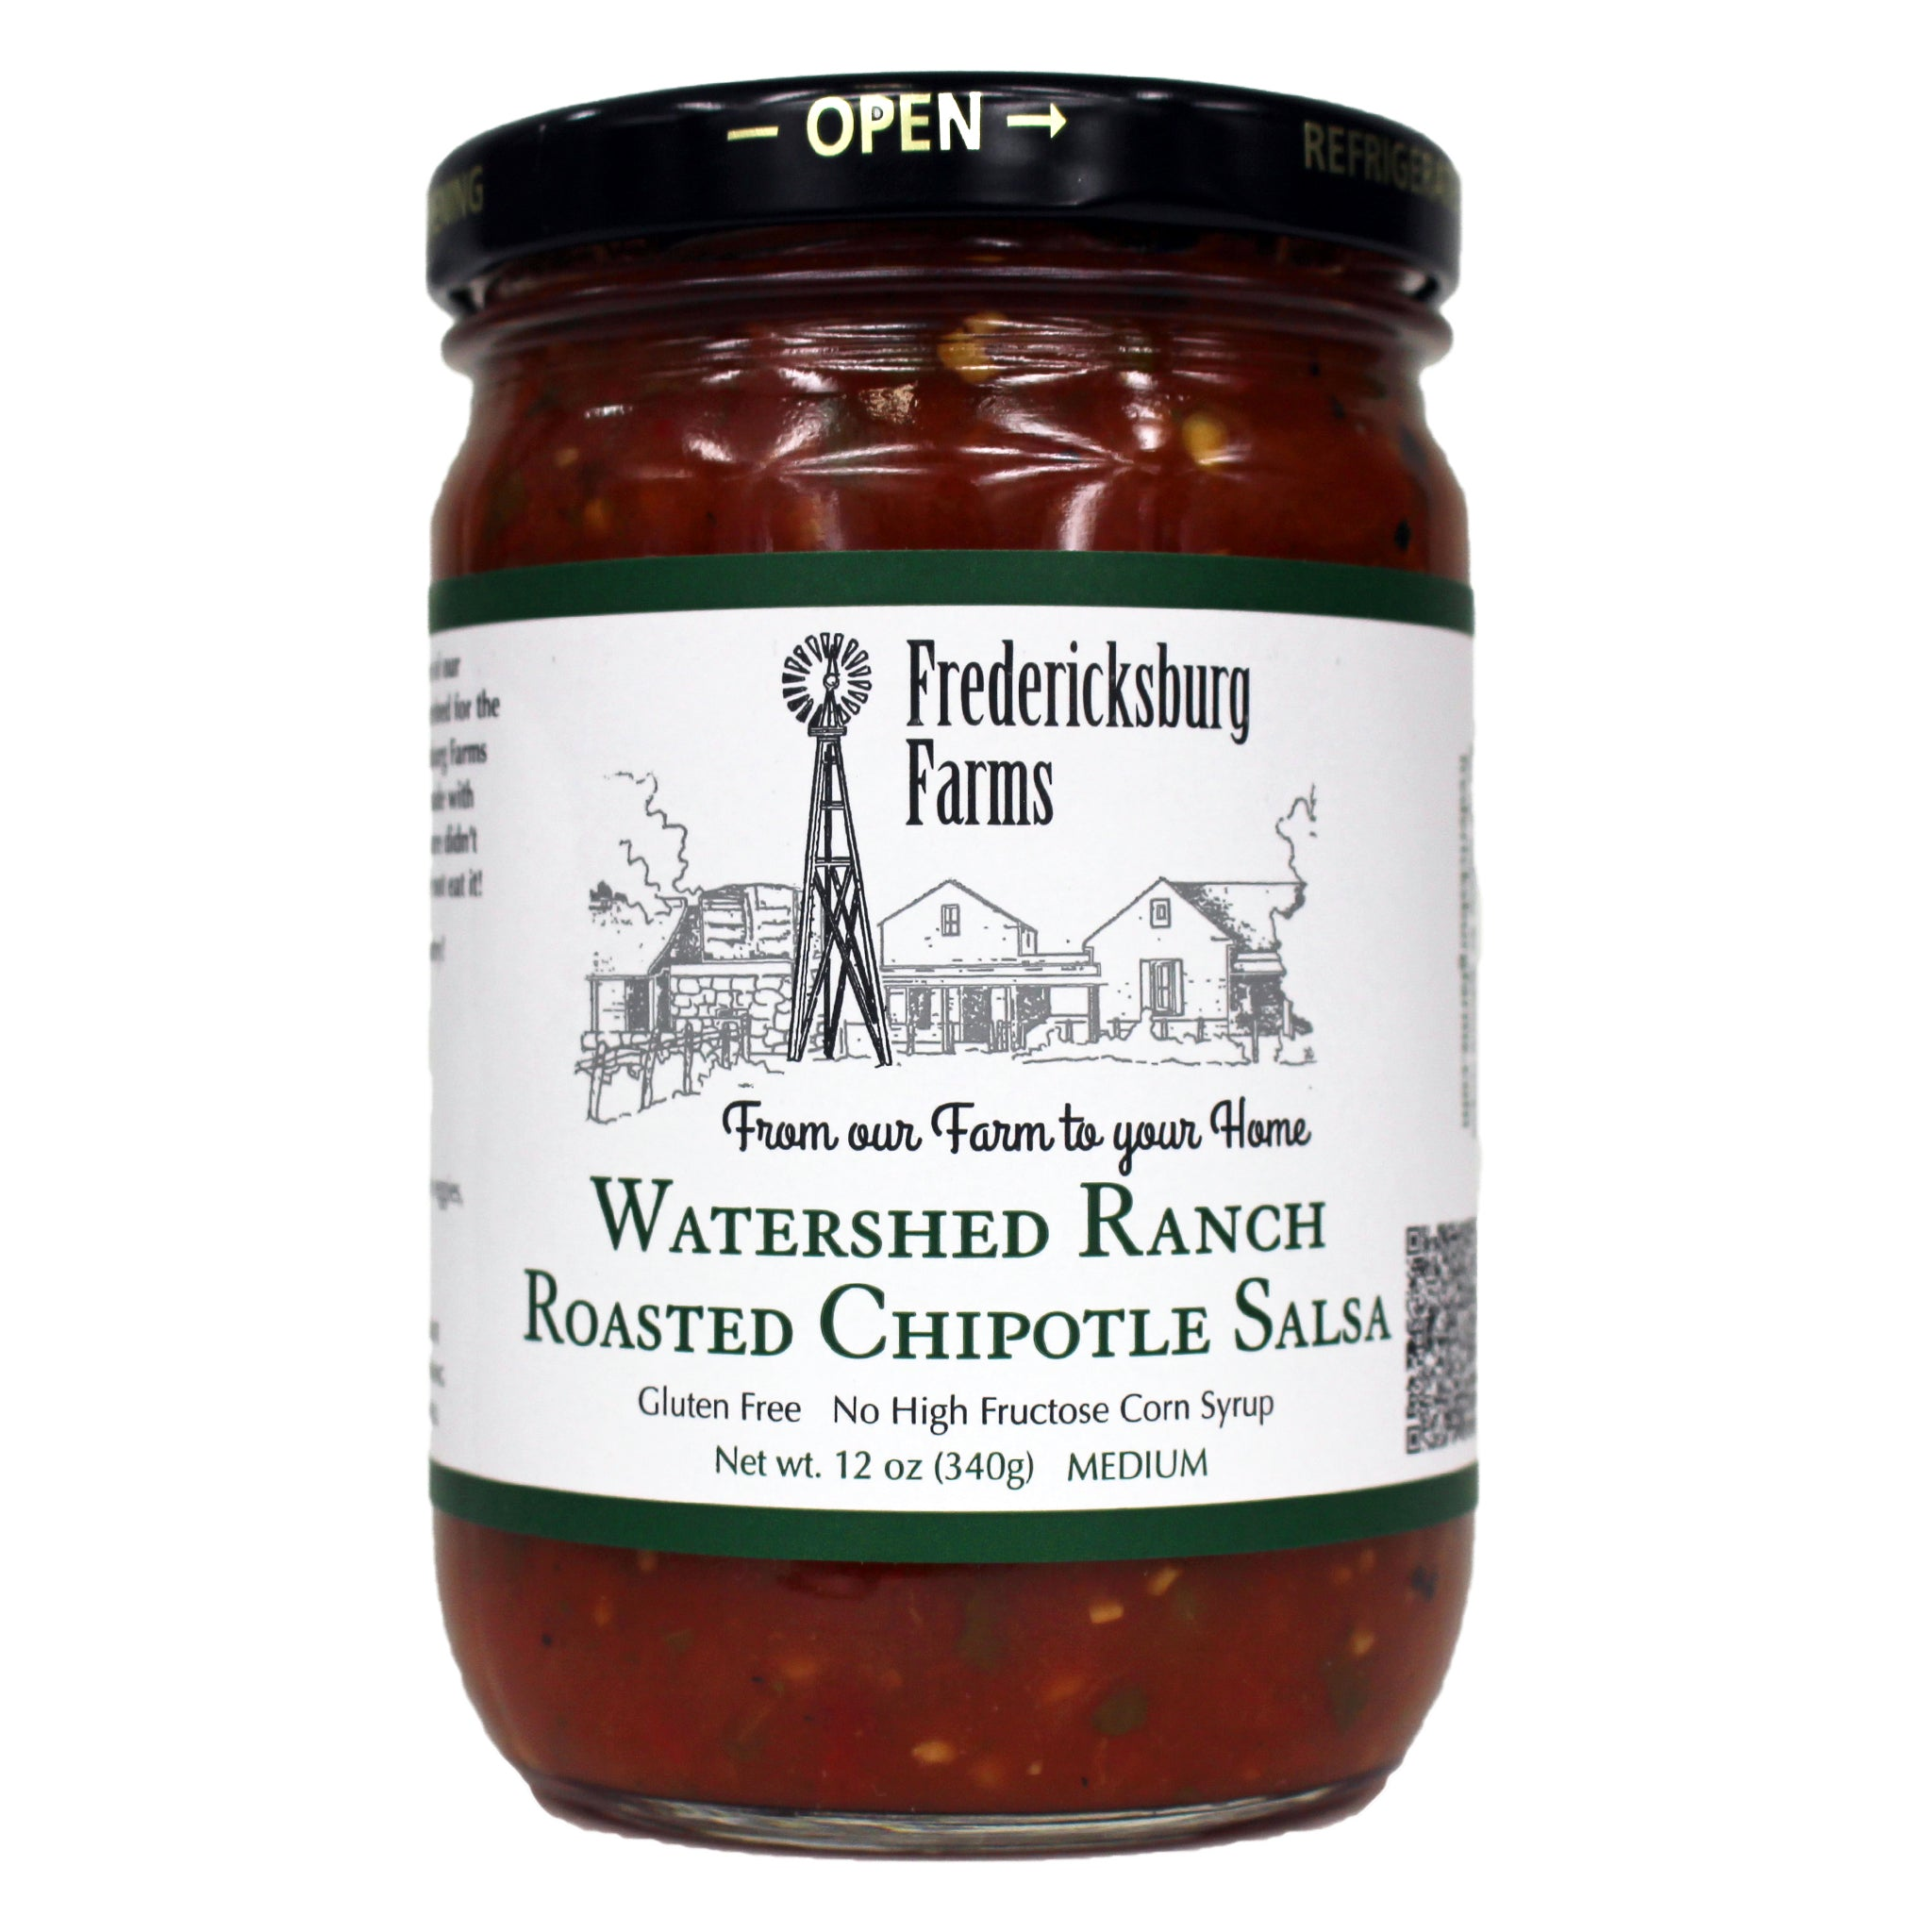 Watershed Ranch Roasted Chipotle Salsa